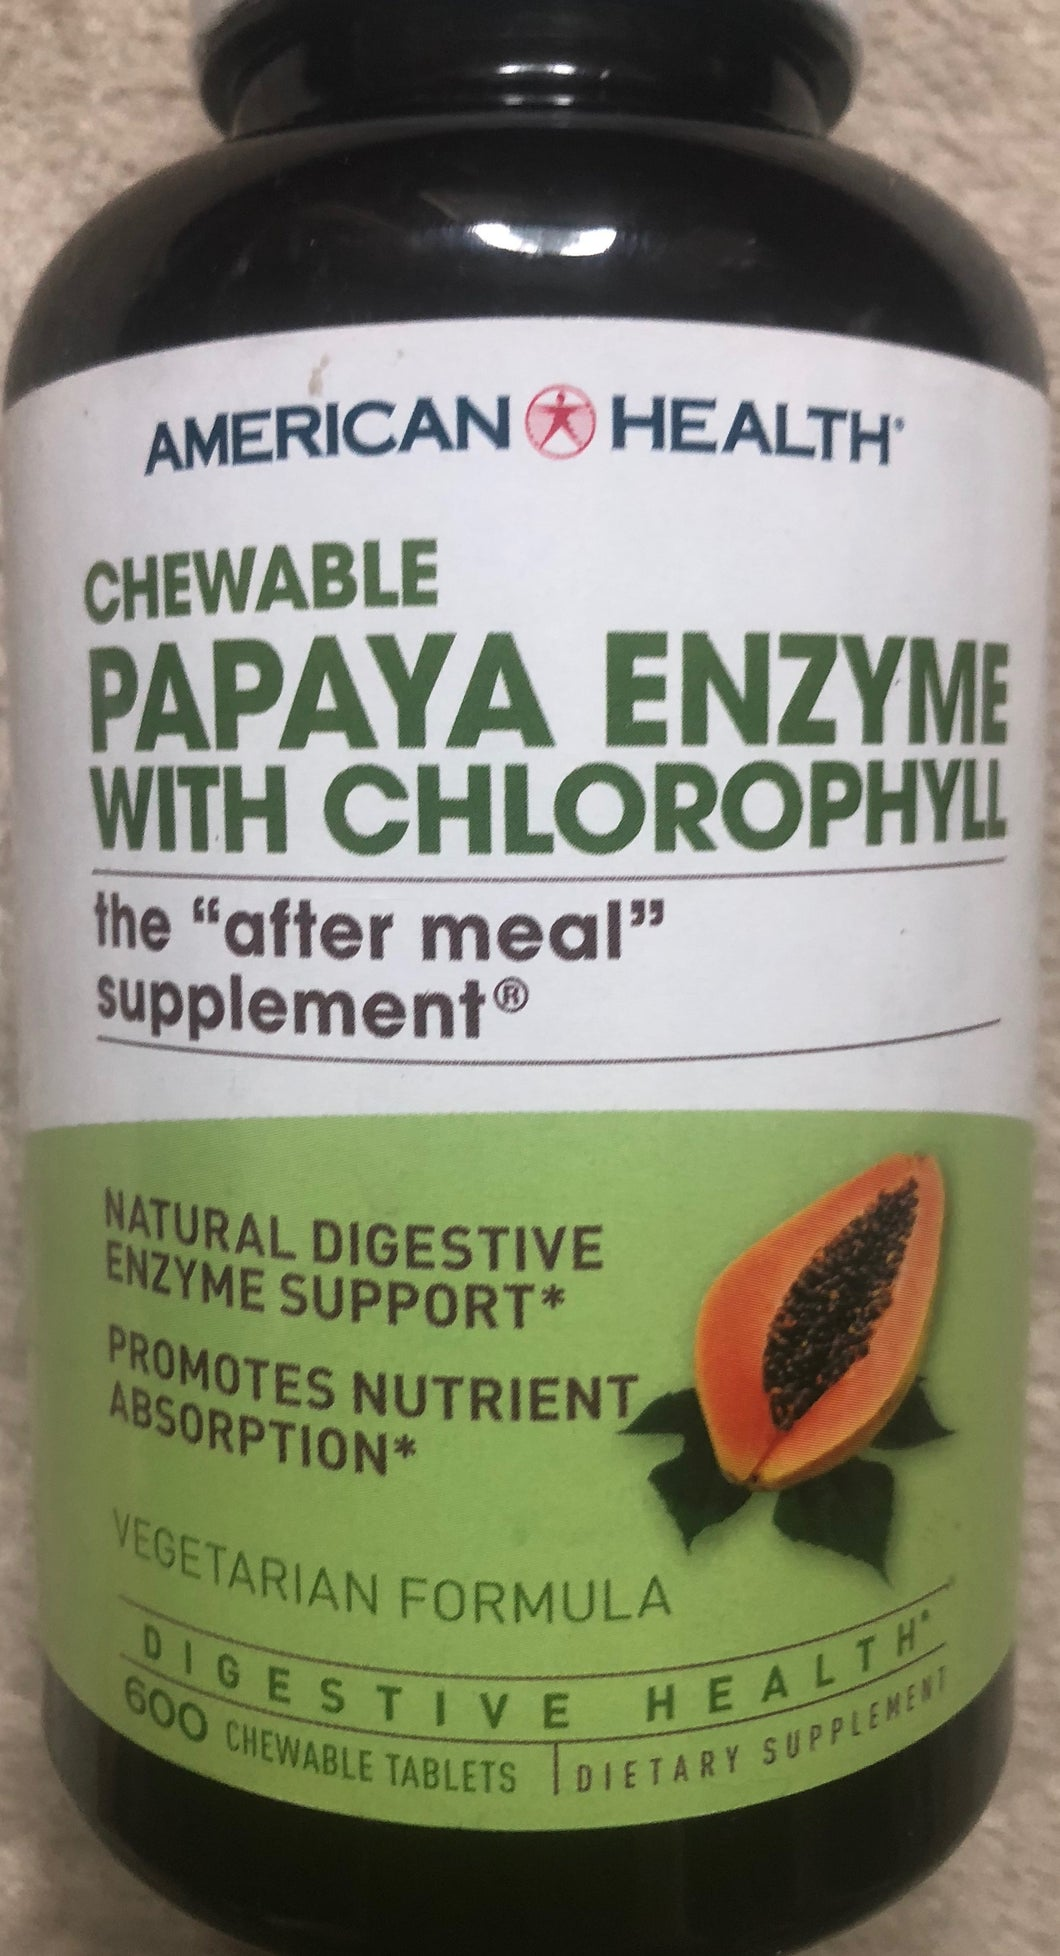 American Health Papaya Enzyme With Chlorophyll 600 chewable tablets